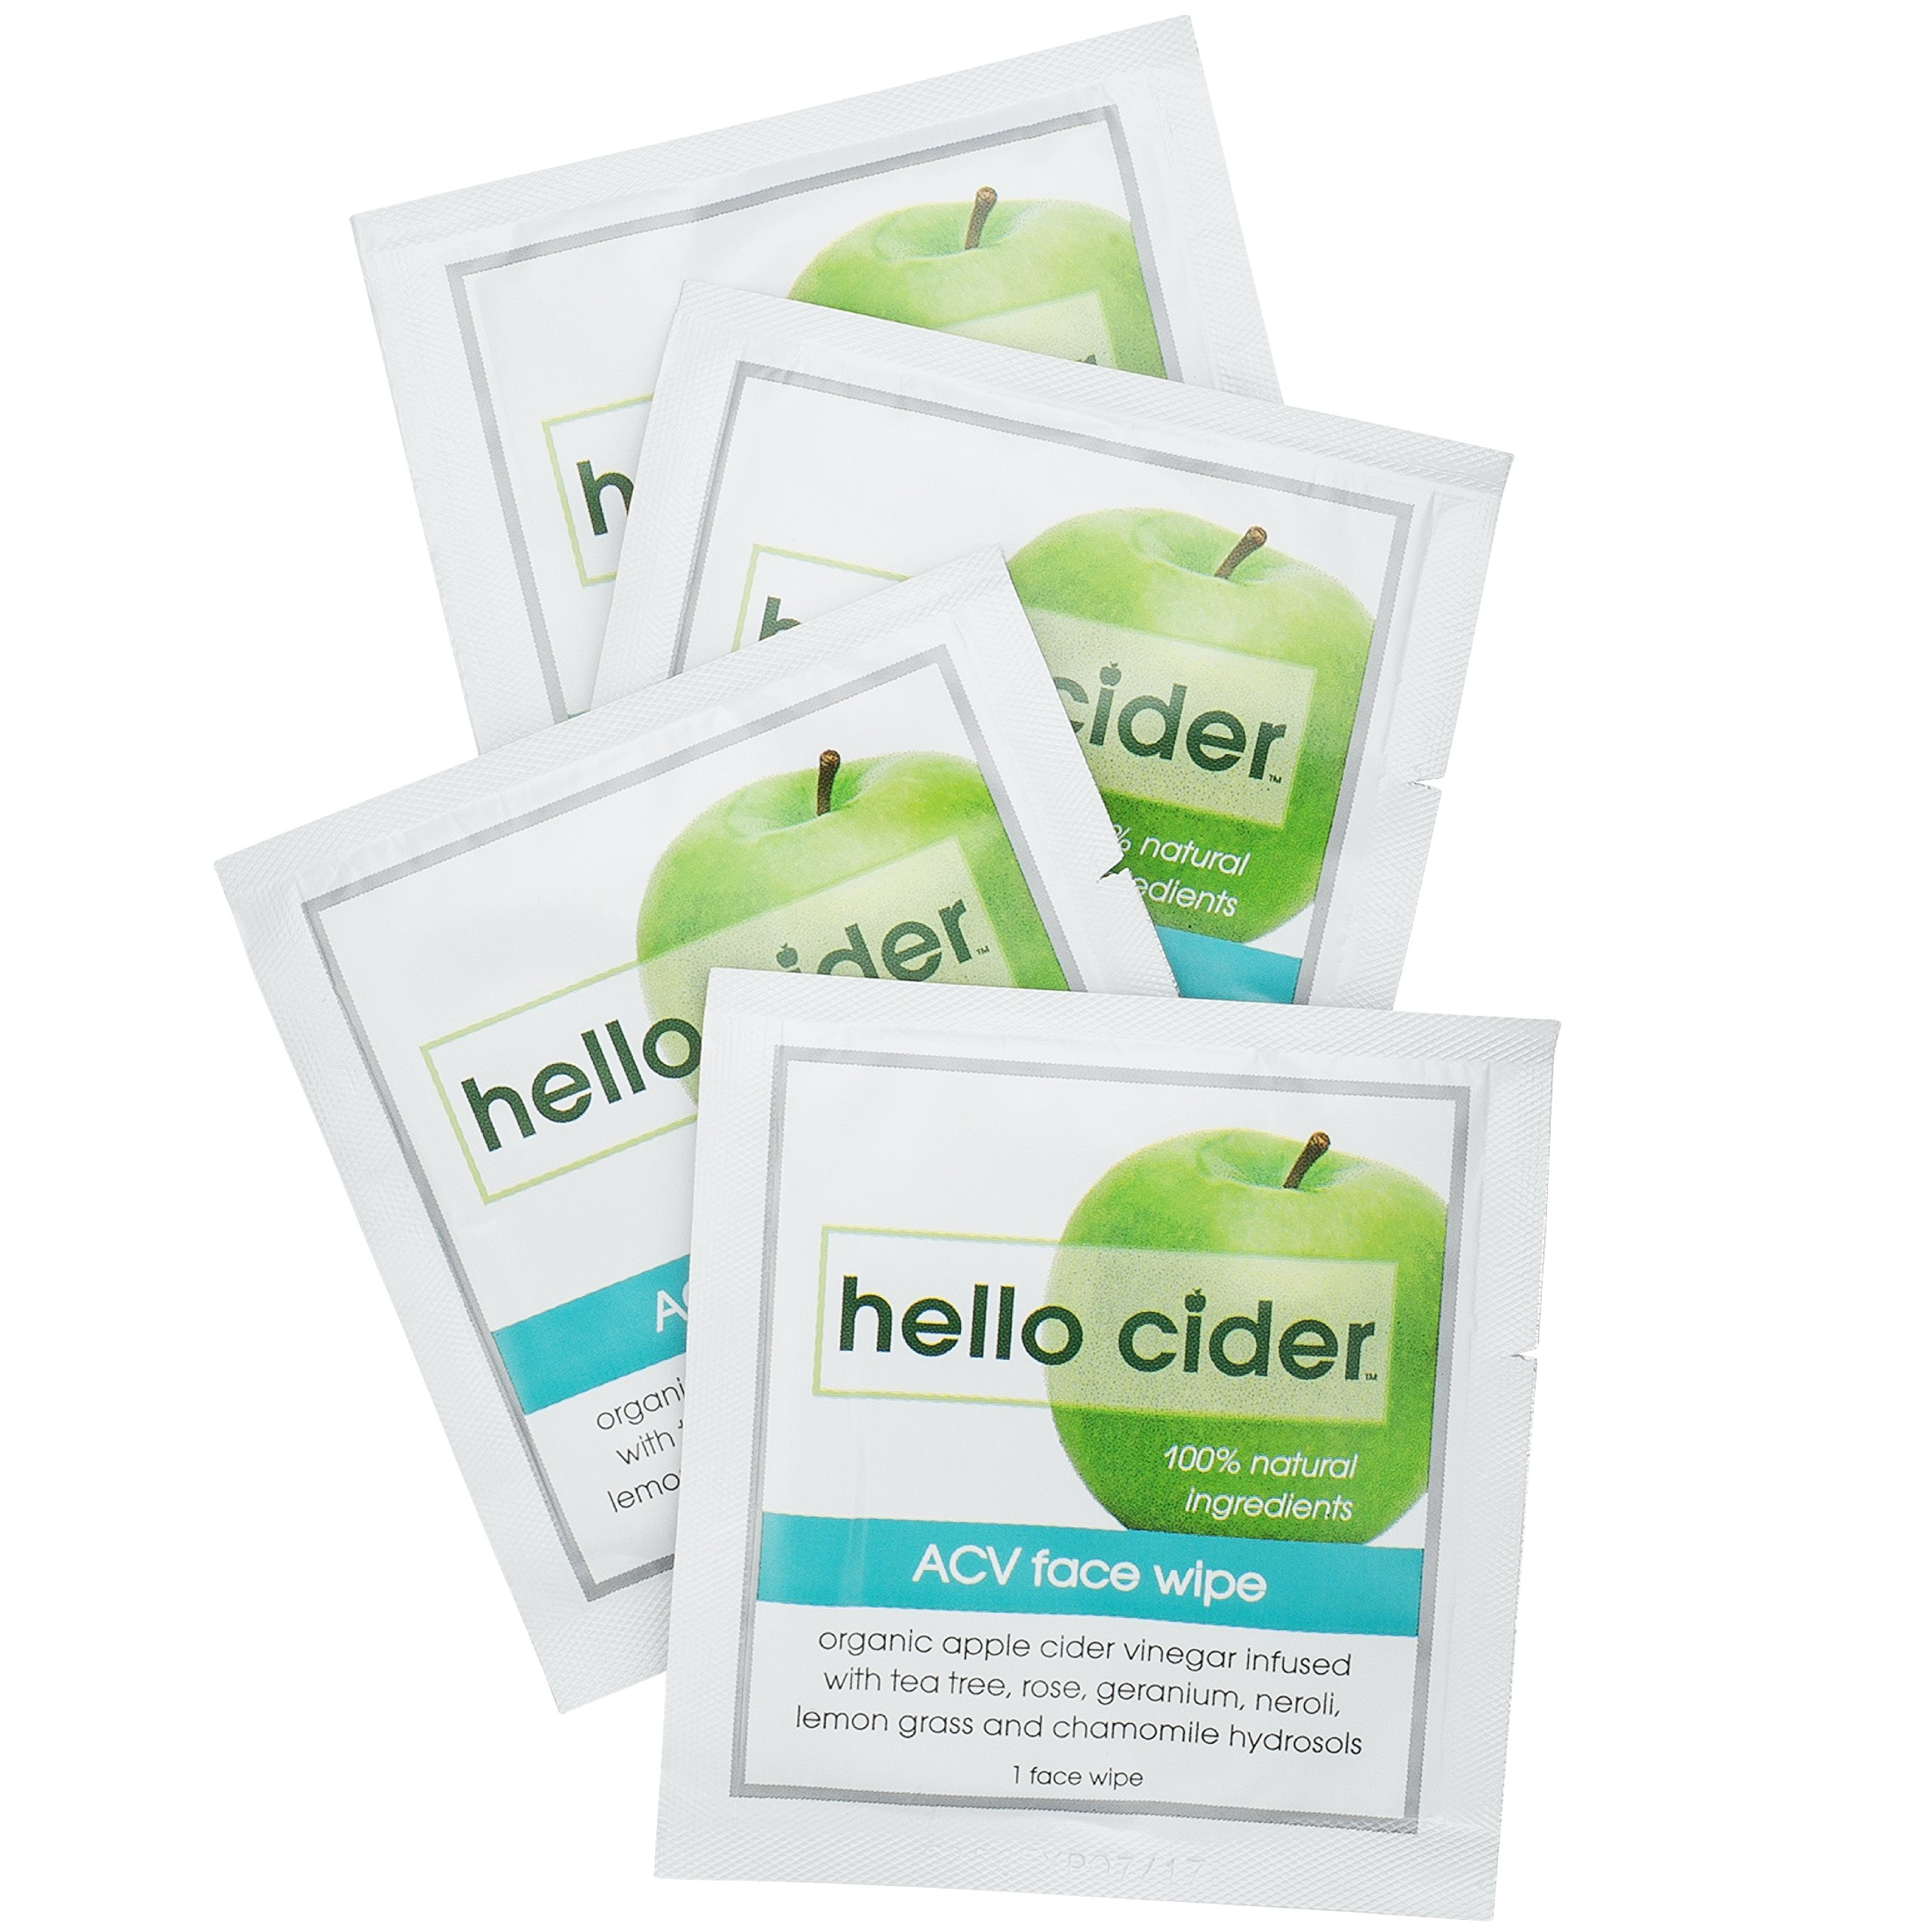 Apple Cider Vinegar Acne Treatment Face Wipes-100% Natural Organic Tea Tree+Rose Geranium+Chamomile+Witch Hazel Hydrosols. Balance pH, Tone, Cleanser, Moisturizer, 25ct Hello Cider